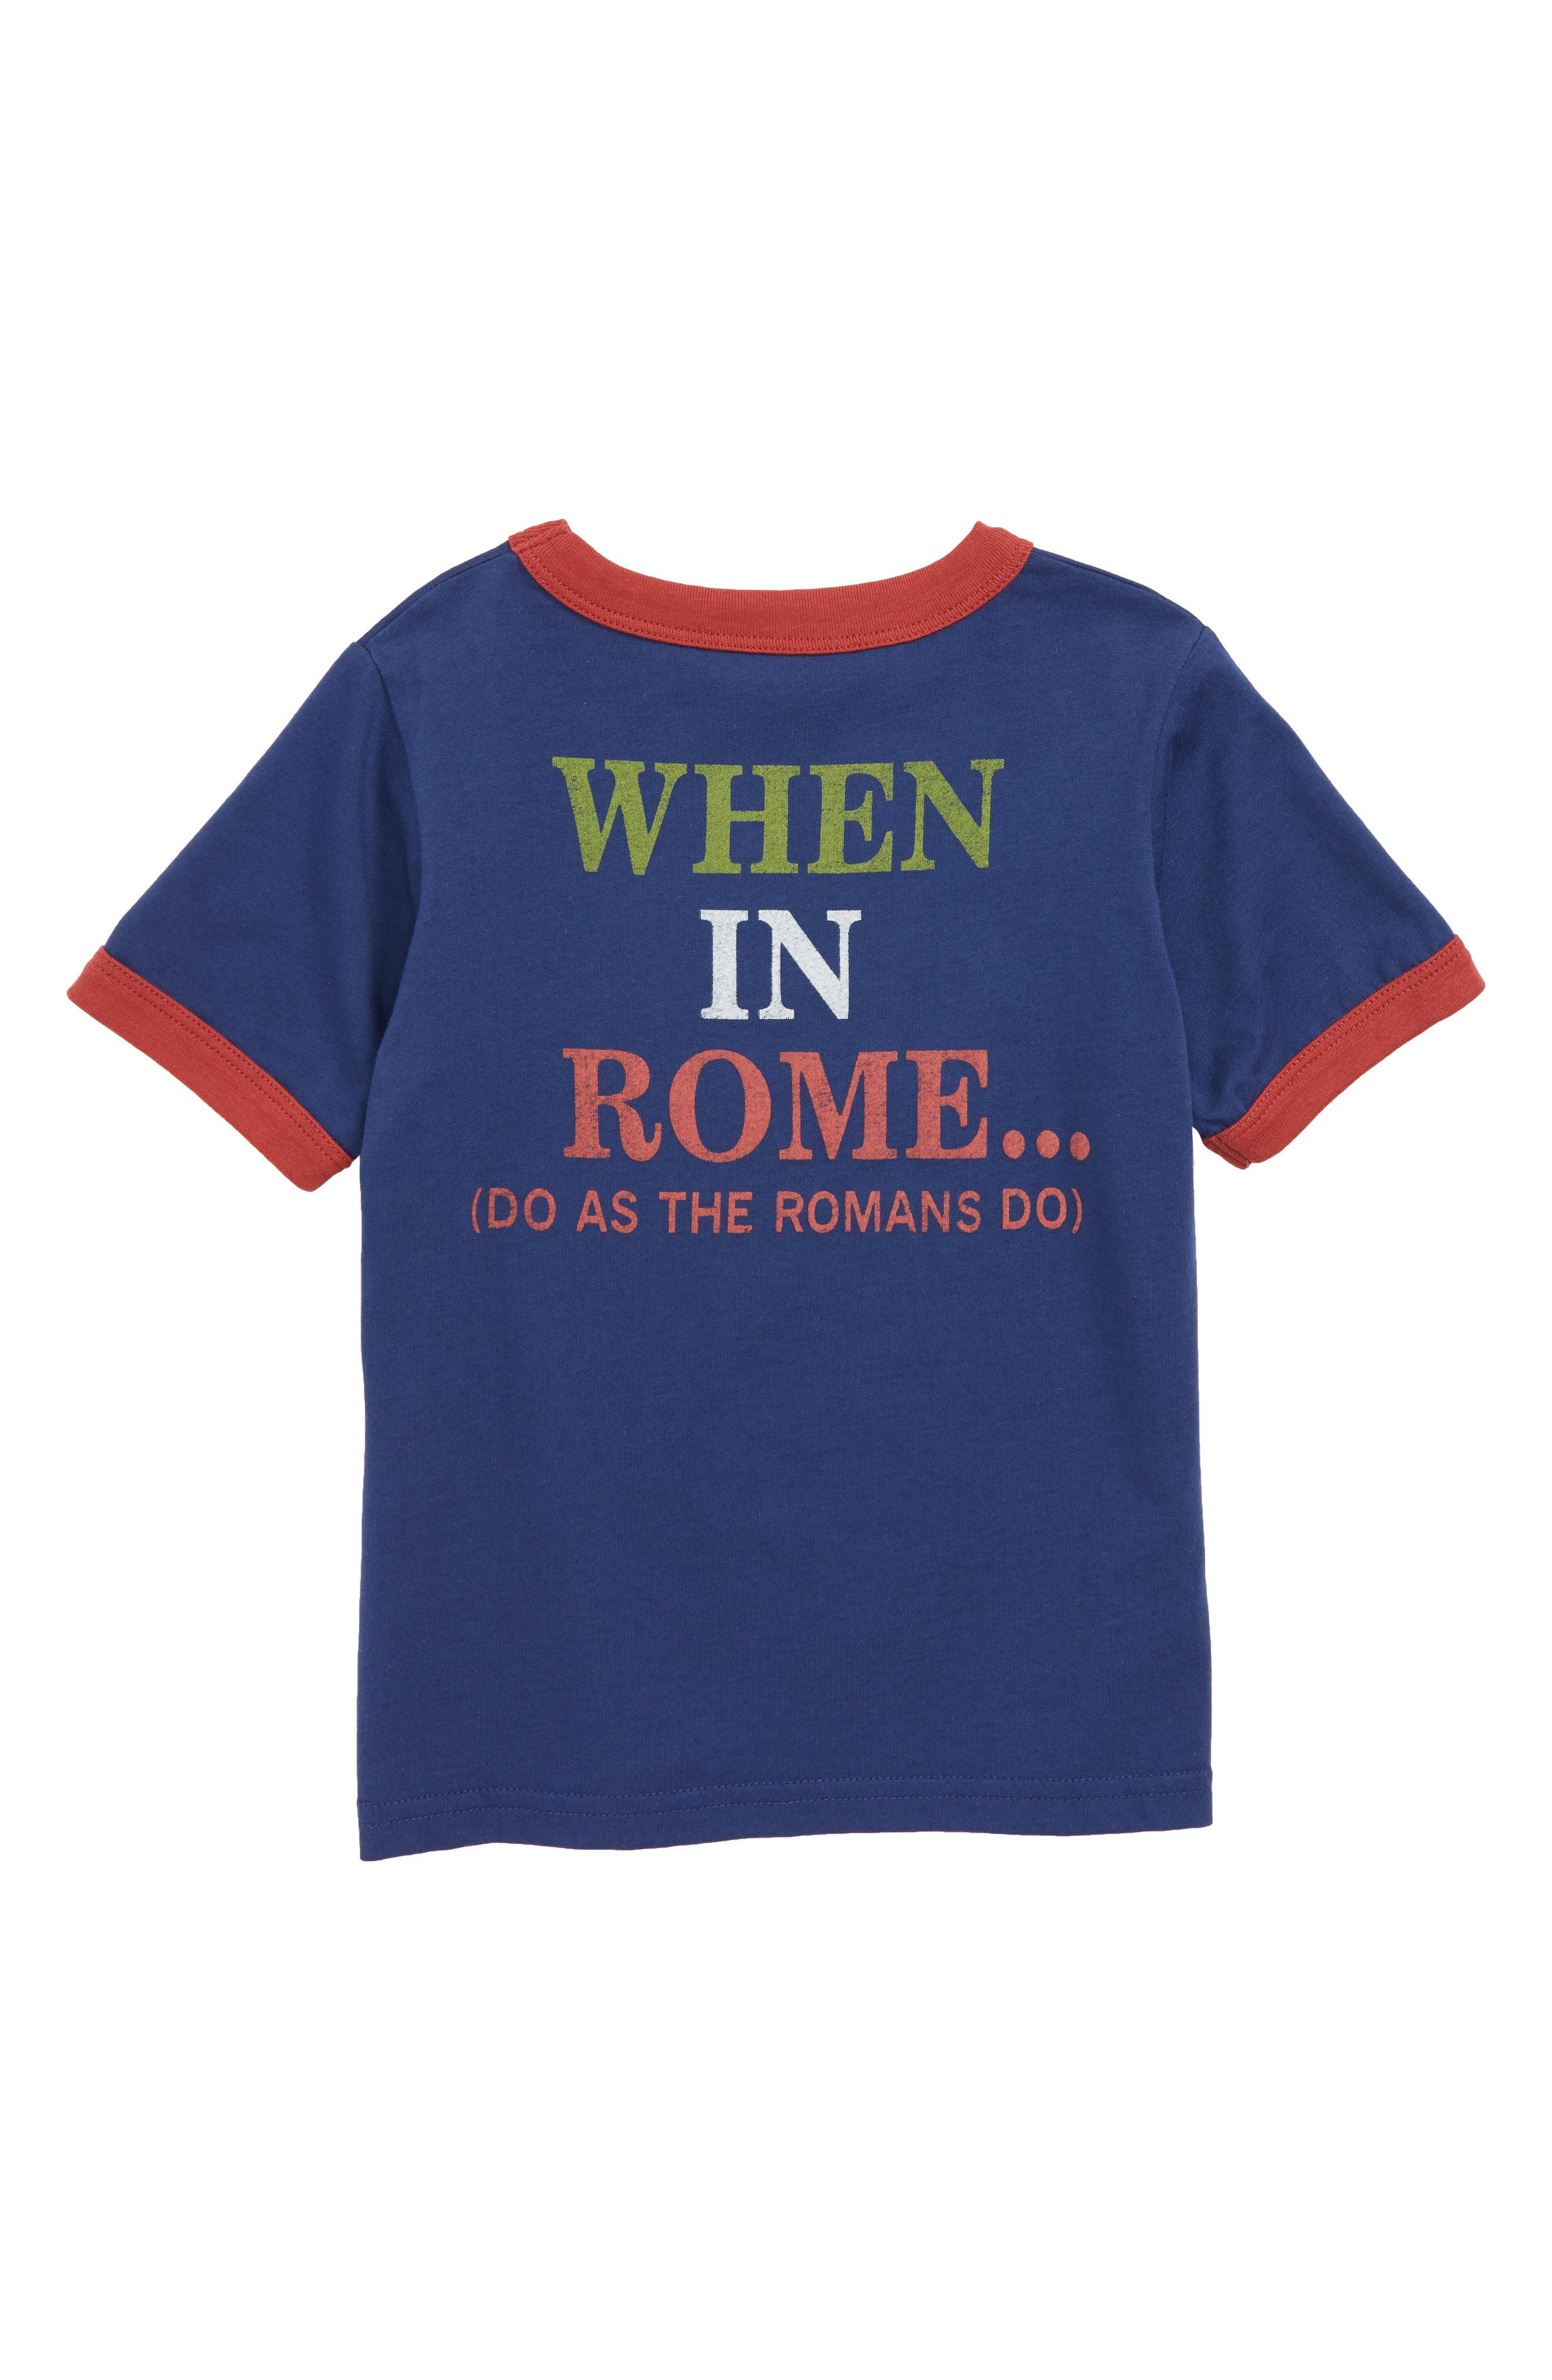 Italia Graphic T-Shirt,                             Alternate thumbnail 2, color,                             410